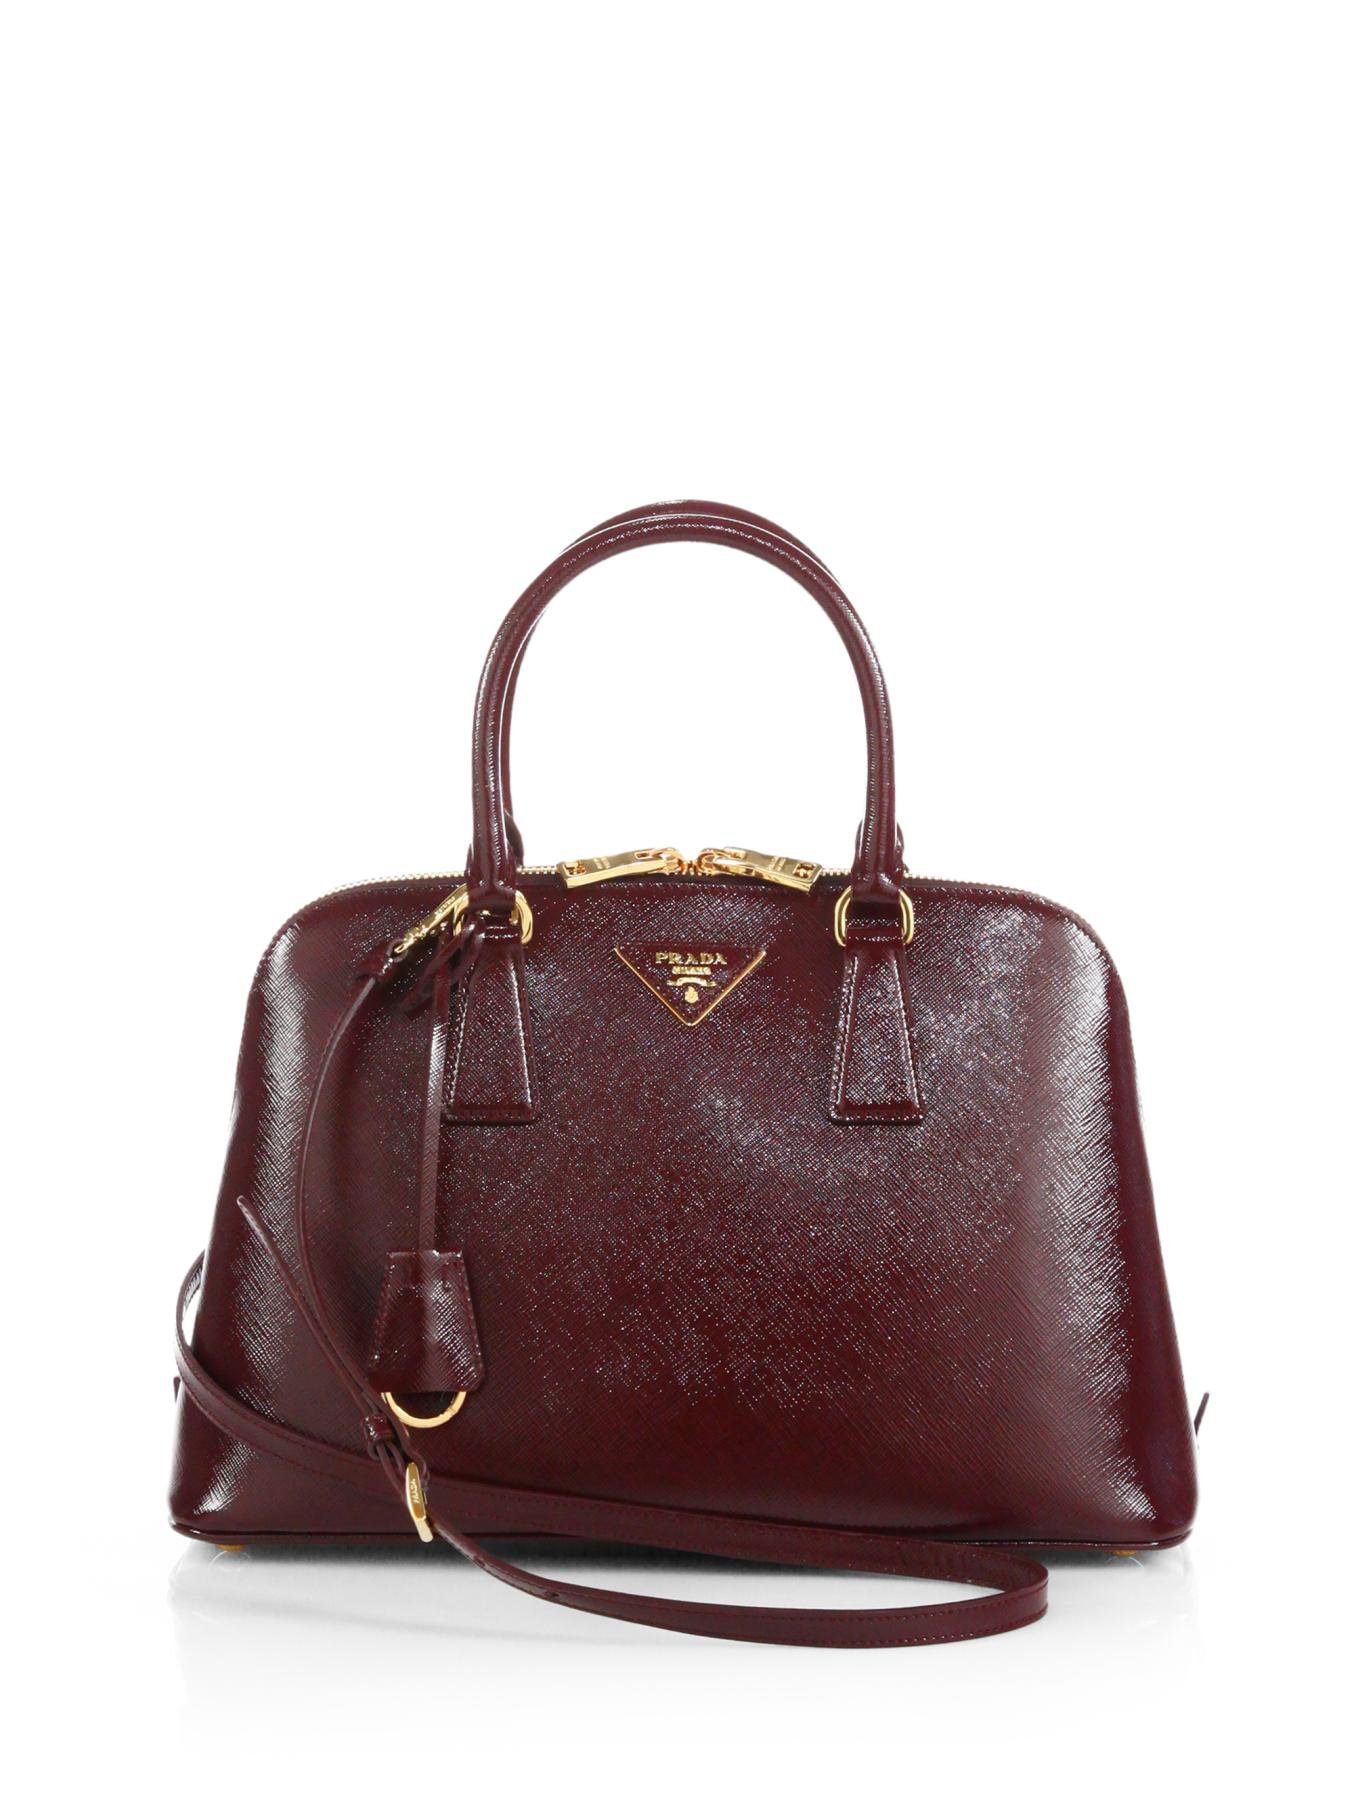 c469f591a5f9 ... greece lyst prada saffiano vernice small promenade bag in brown 58fa1  412cc